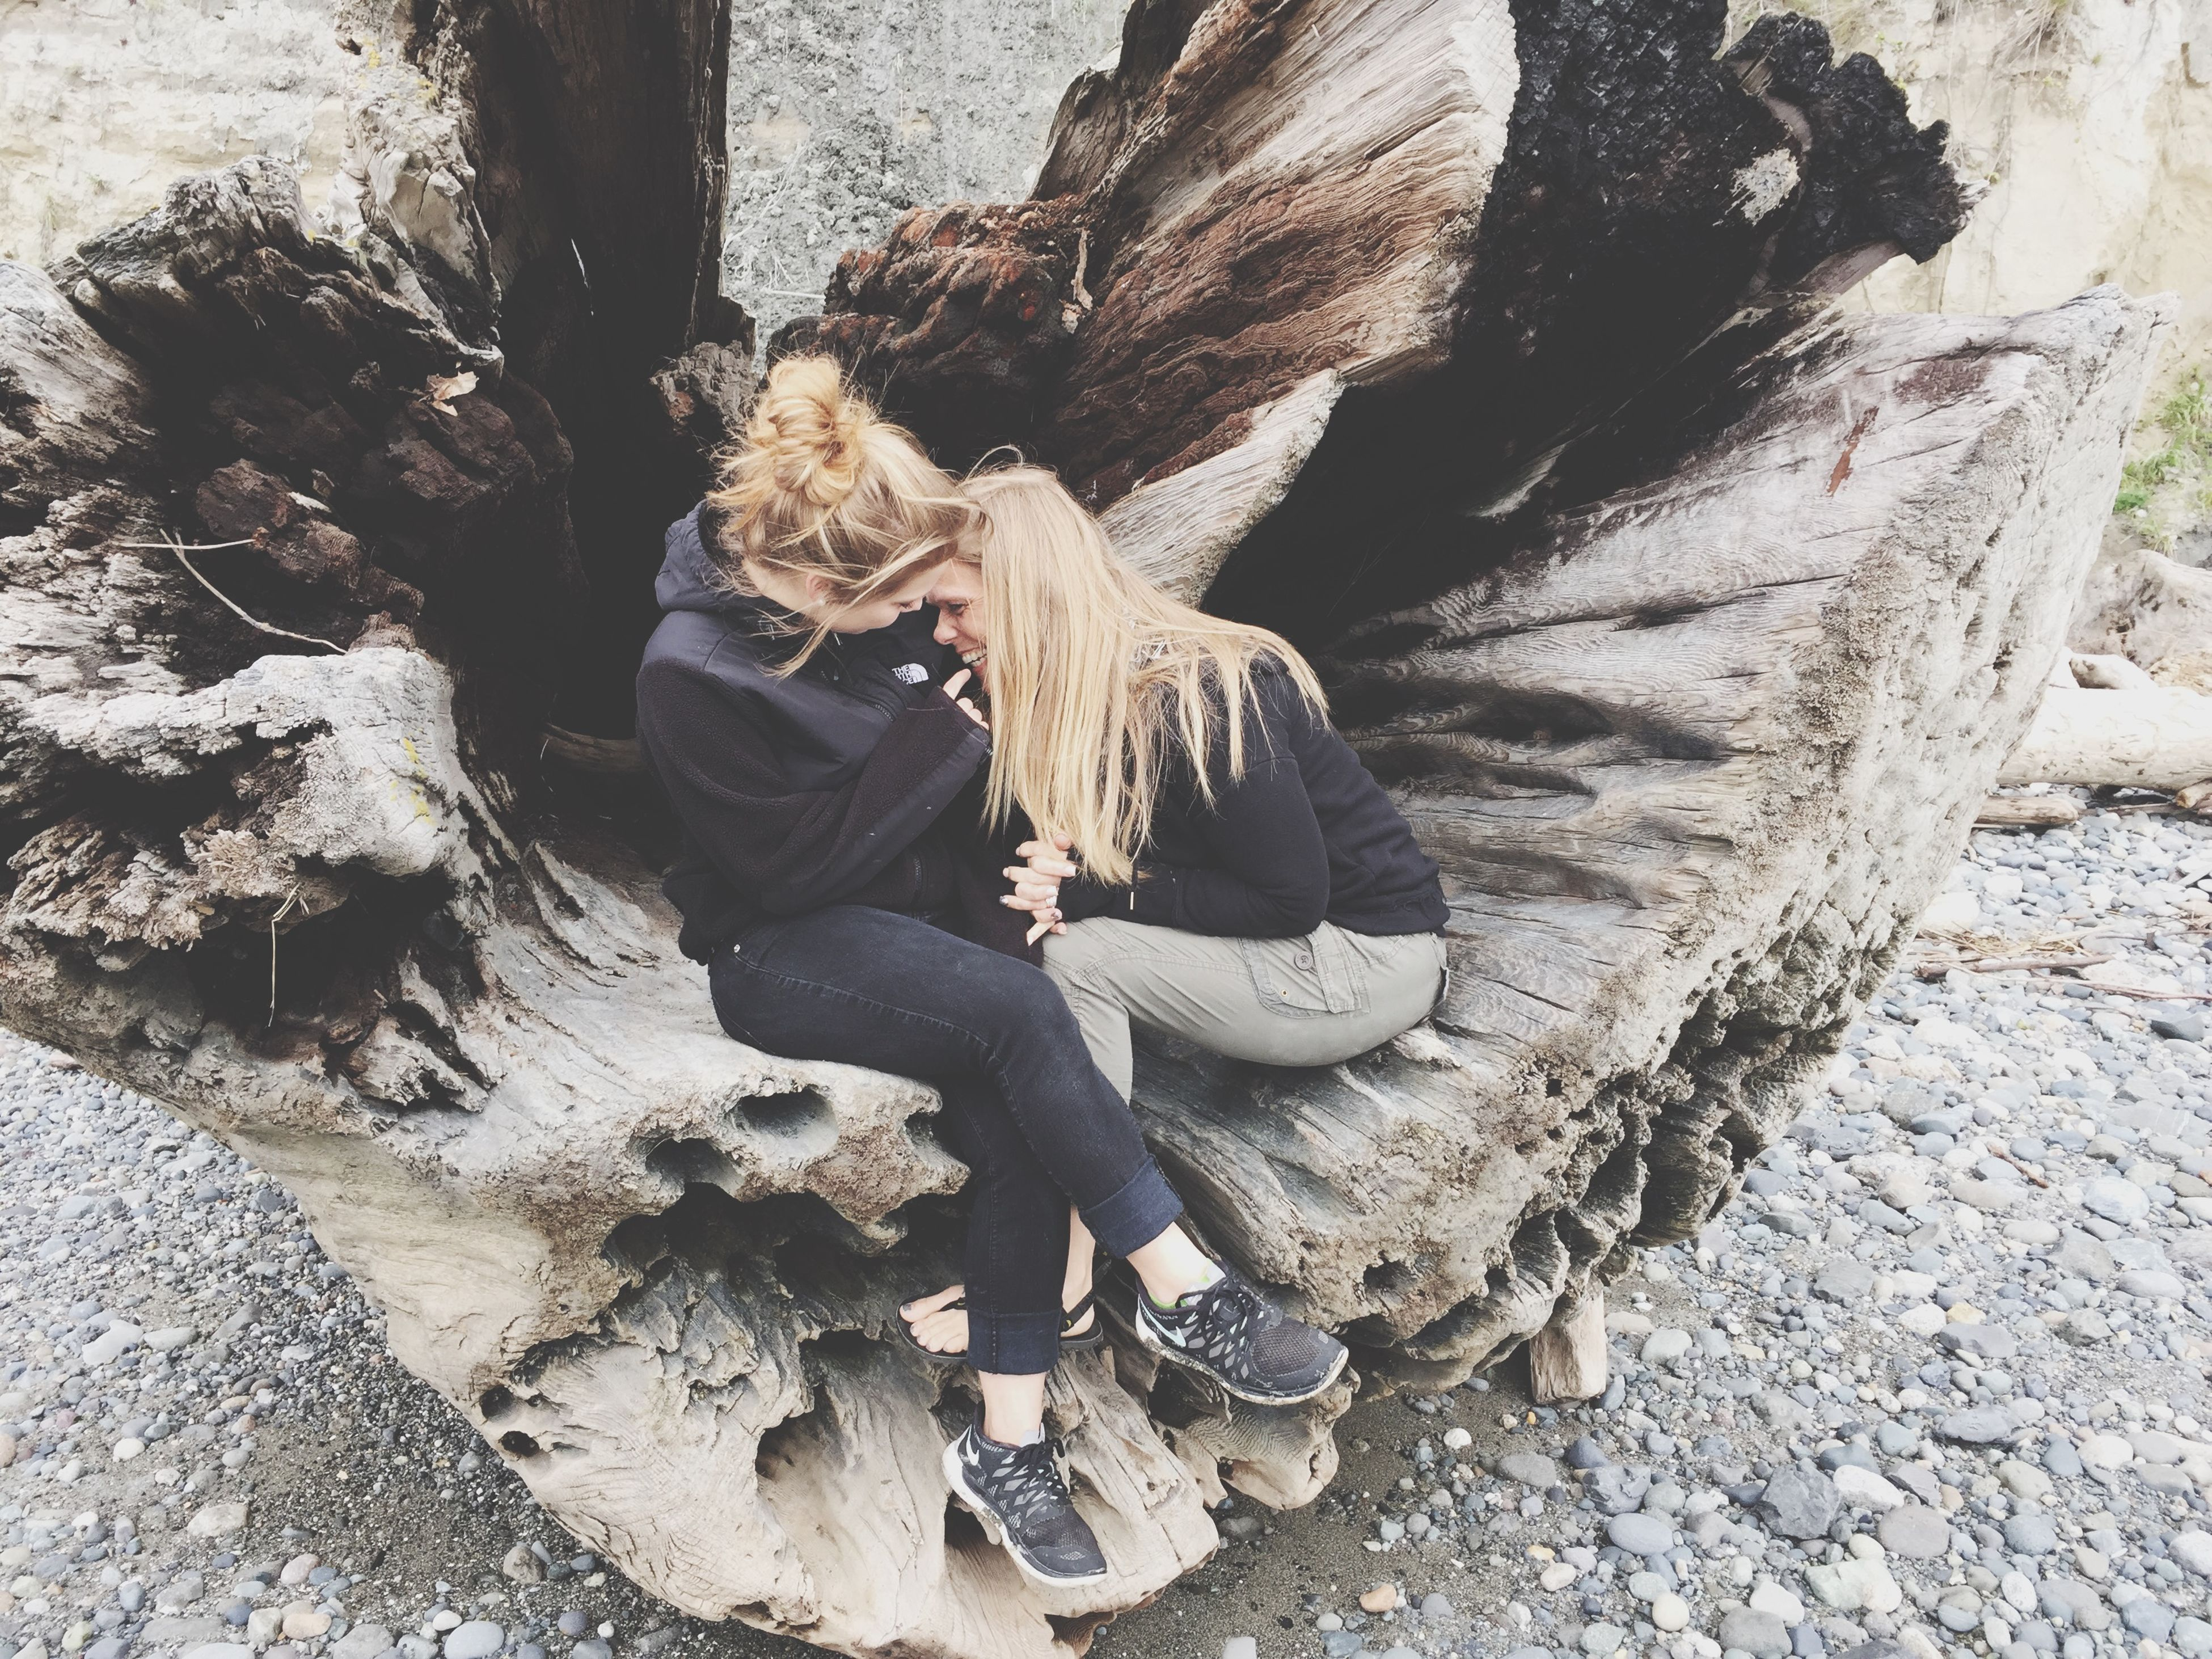 tree trunk, rock - object, sunlight, full length, tree, day, outdoors, nature, shadow, lifestyles, leisure activity, high angle view, rock formation, sitting, textured, rock, standing, casual clothing